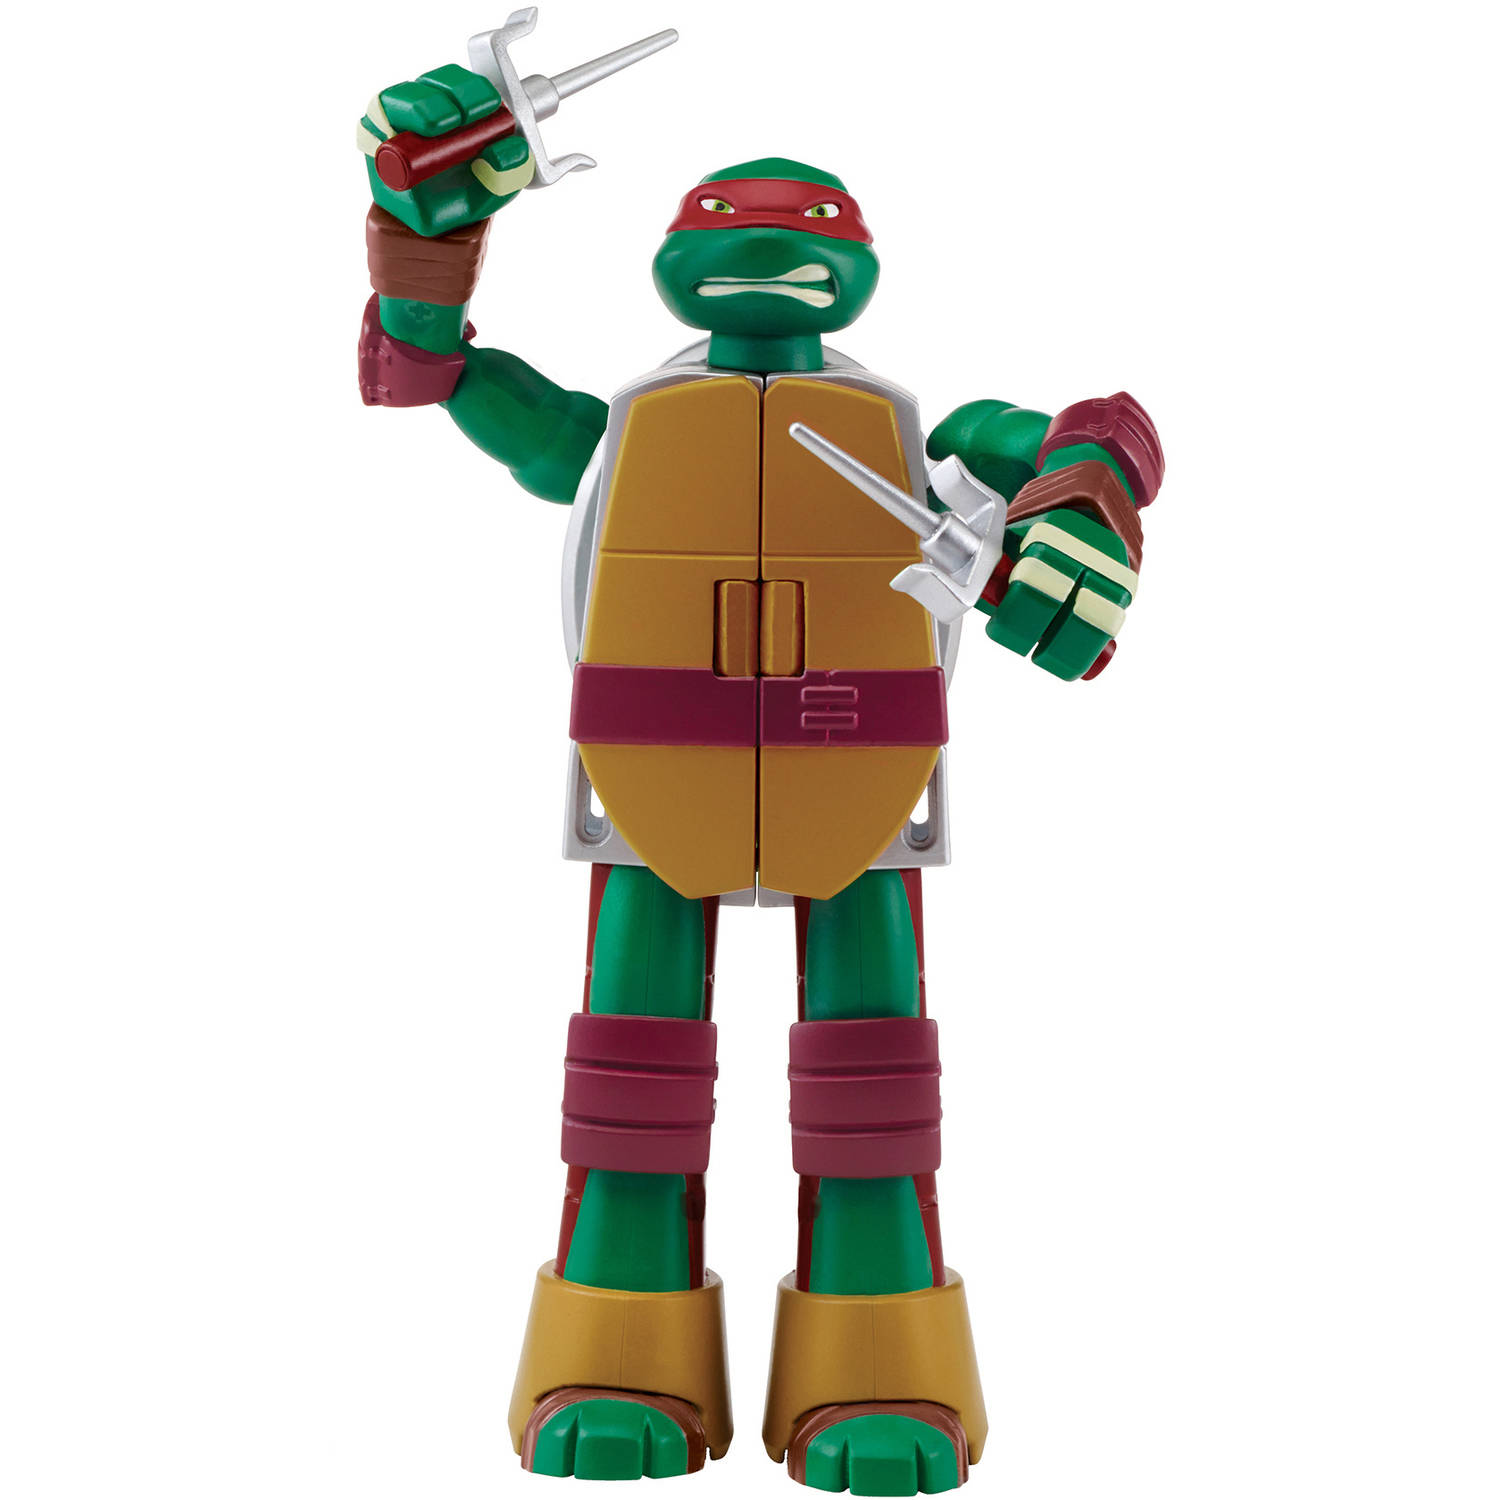 TMNT Mutations Raphael Ninja Turtle into Weapon Action Figure